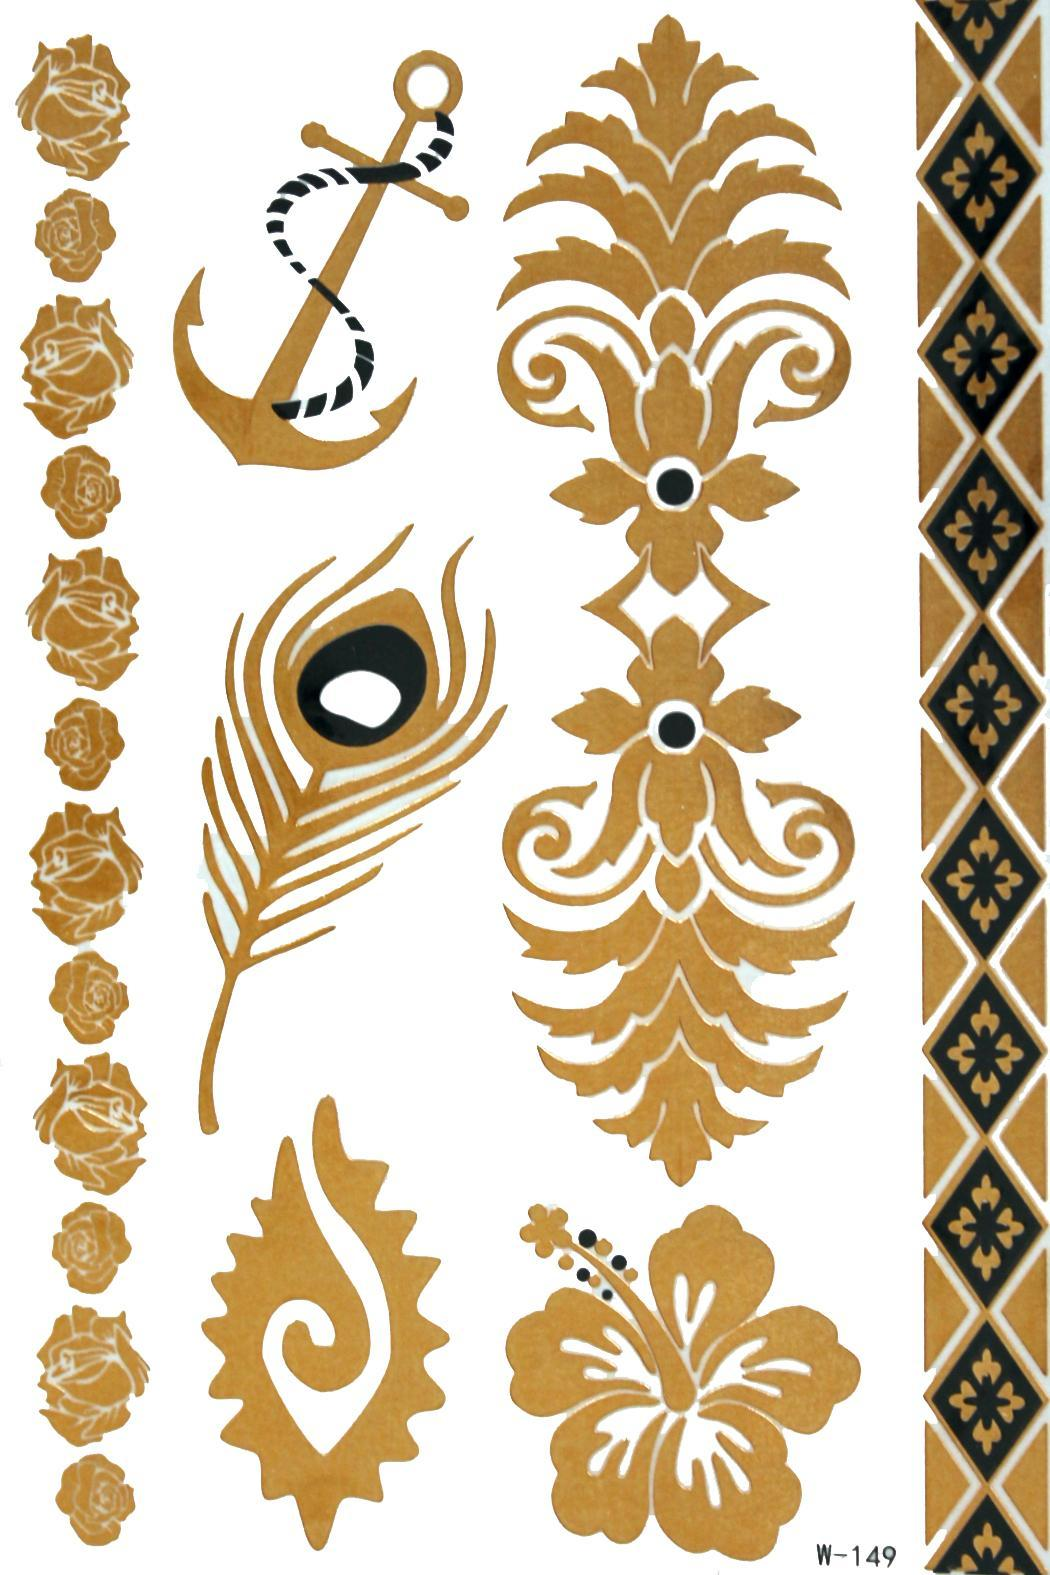 violet del  Gold Jewelry Tattoos - Main Image